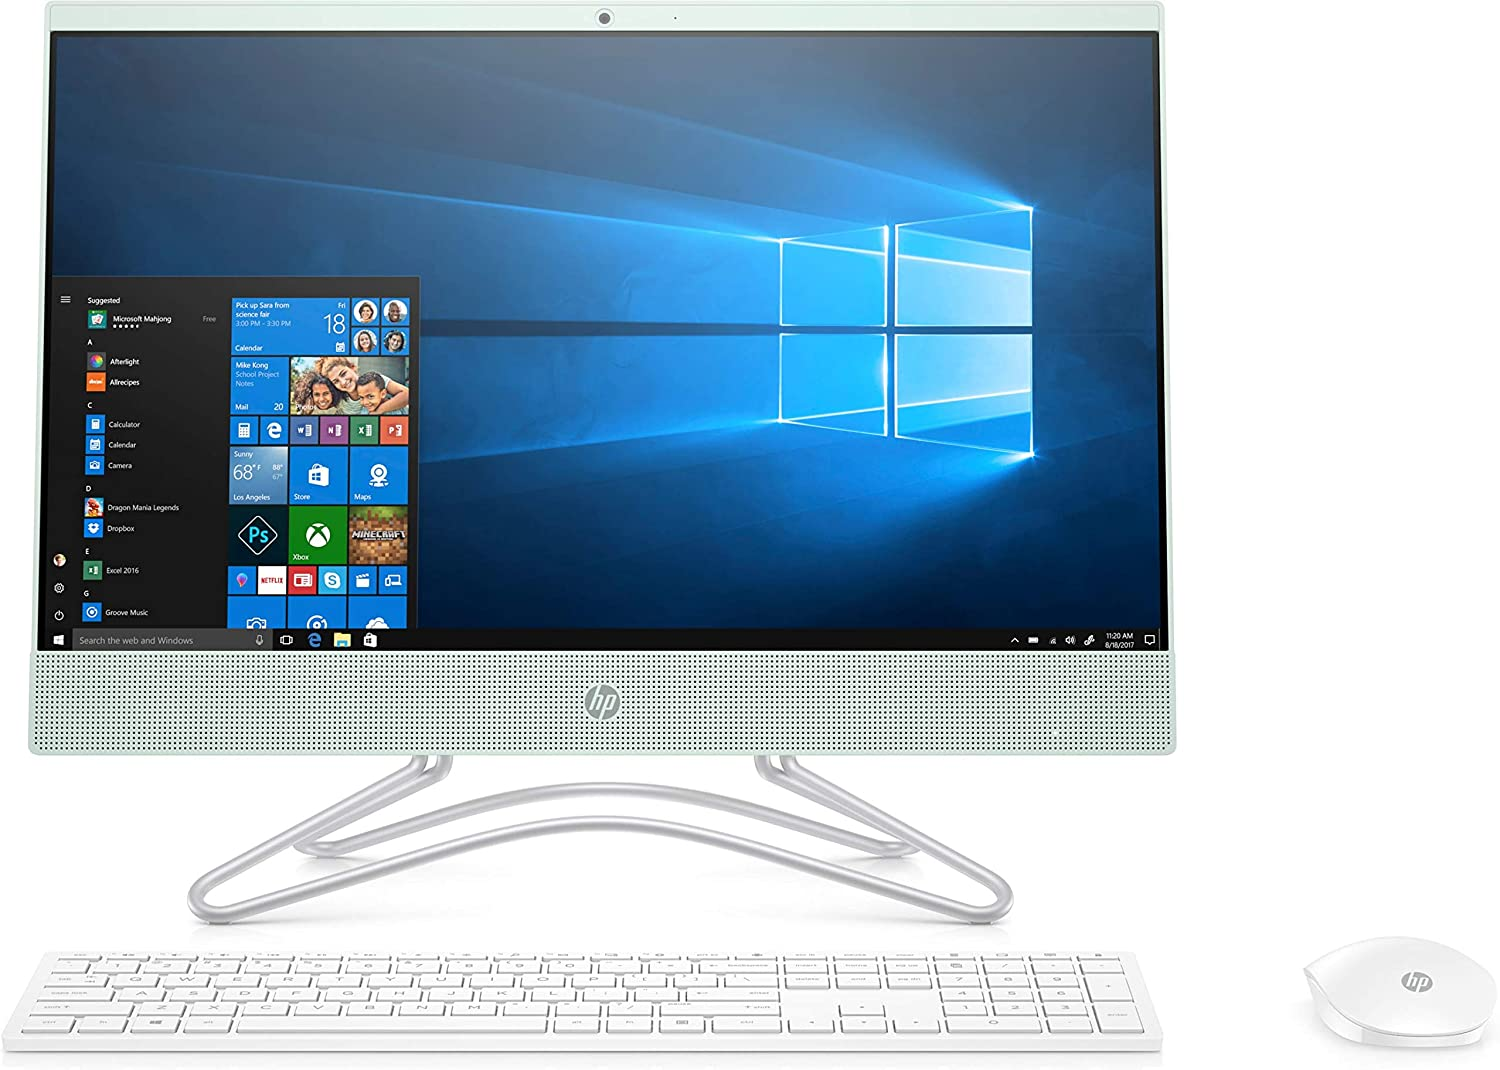 2019 New HP 22-inch FHD All-in-One Computer, Intel Celeron G4900, 4GB RAM, 1TB Hard Drive, Windows 10